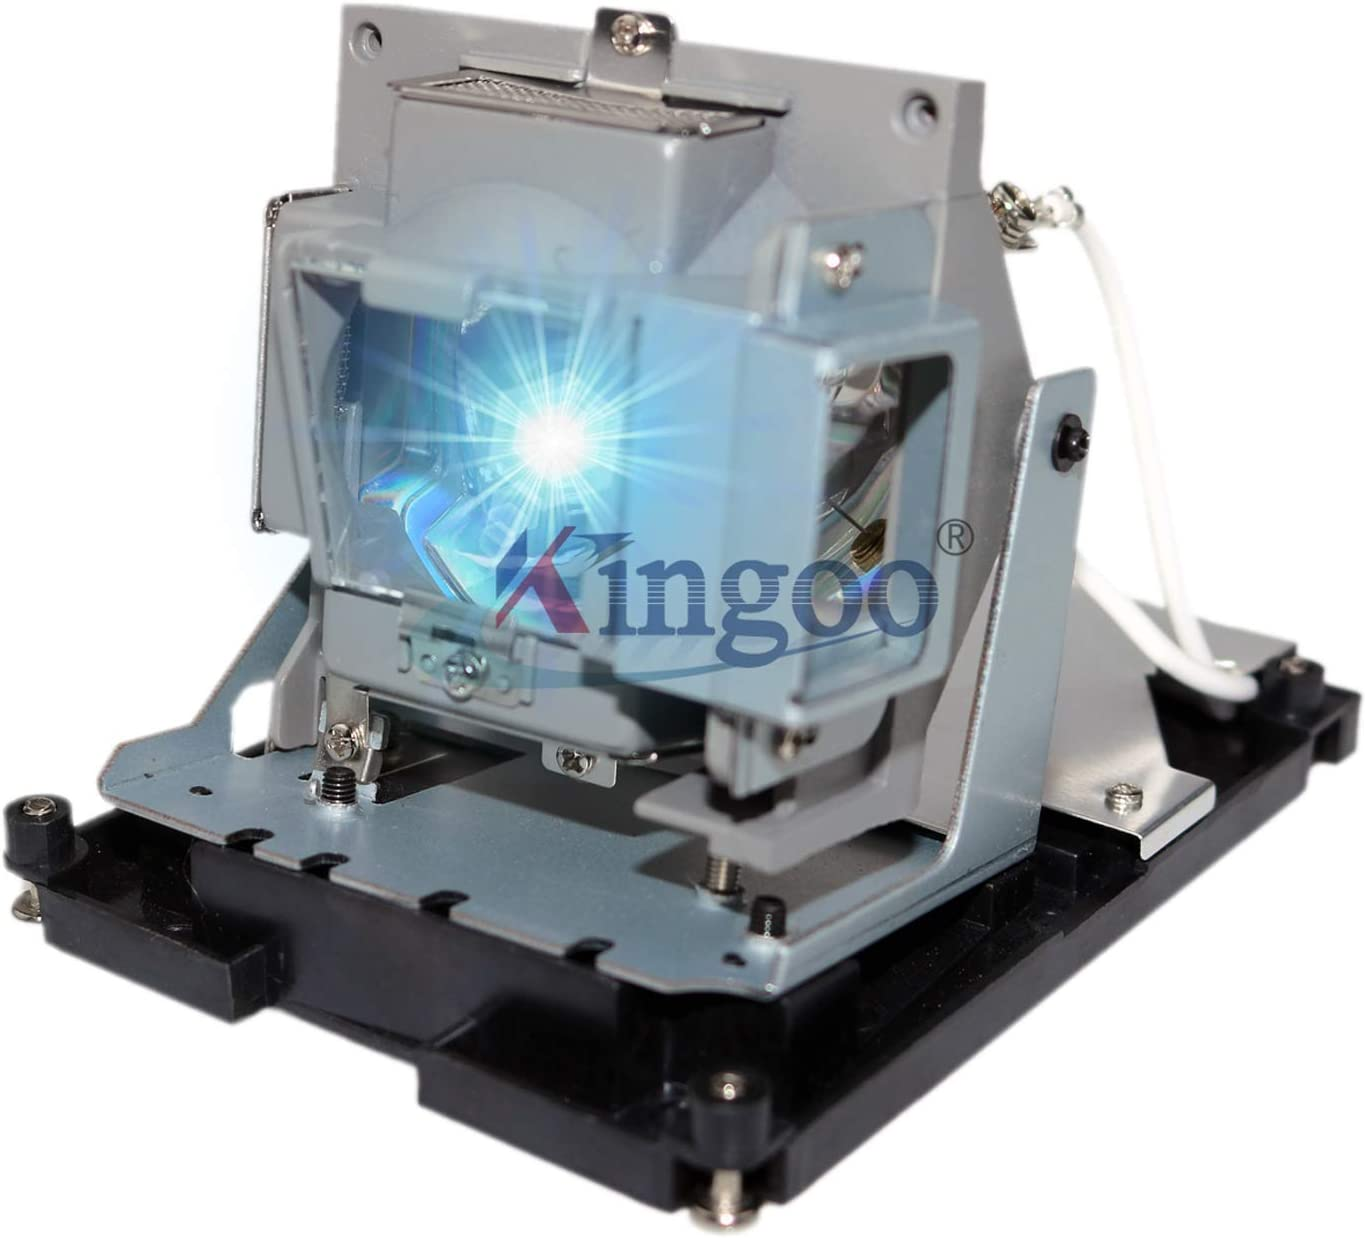 Kingoo for OPTOMA BL-FS300C TH1060P TX779P-3D Projector Lamp